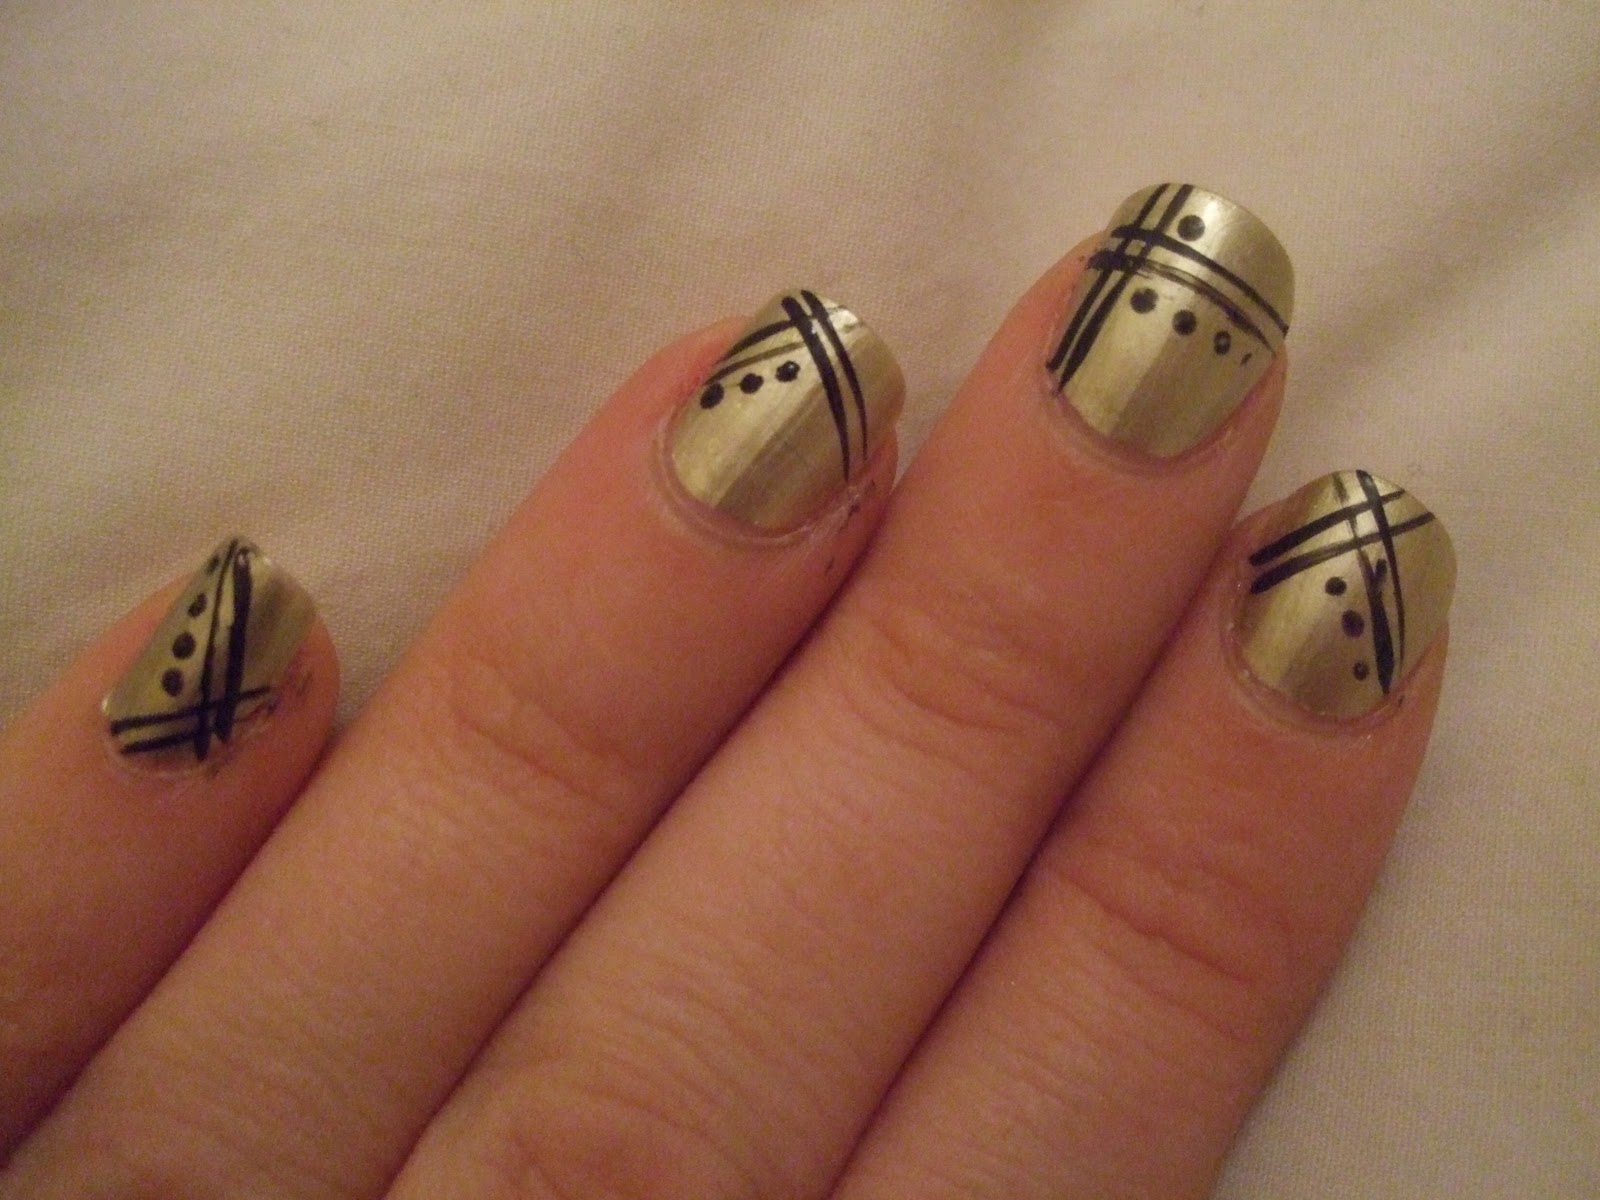 oooooh pretty: gold art deco nails